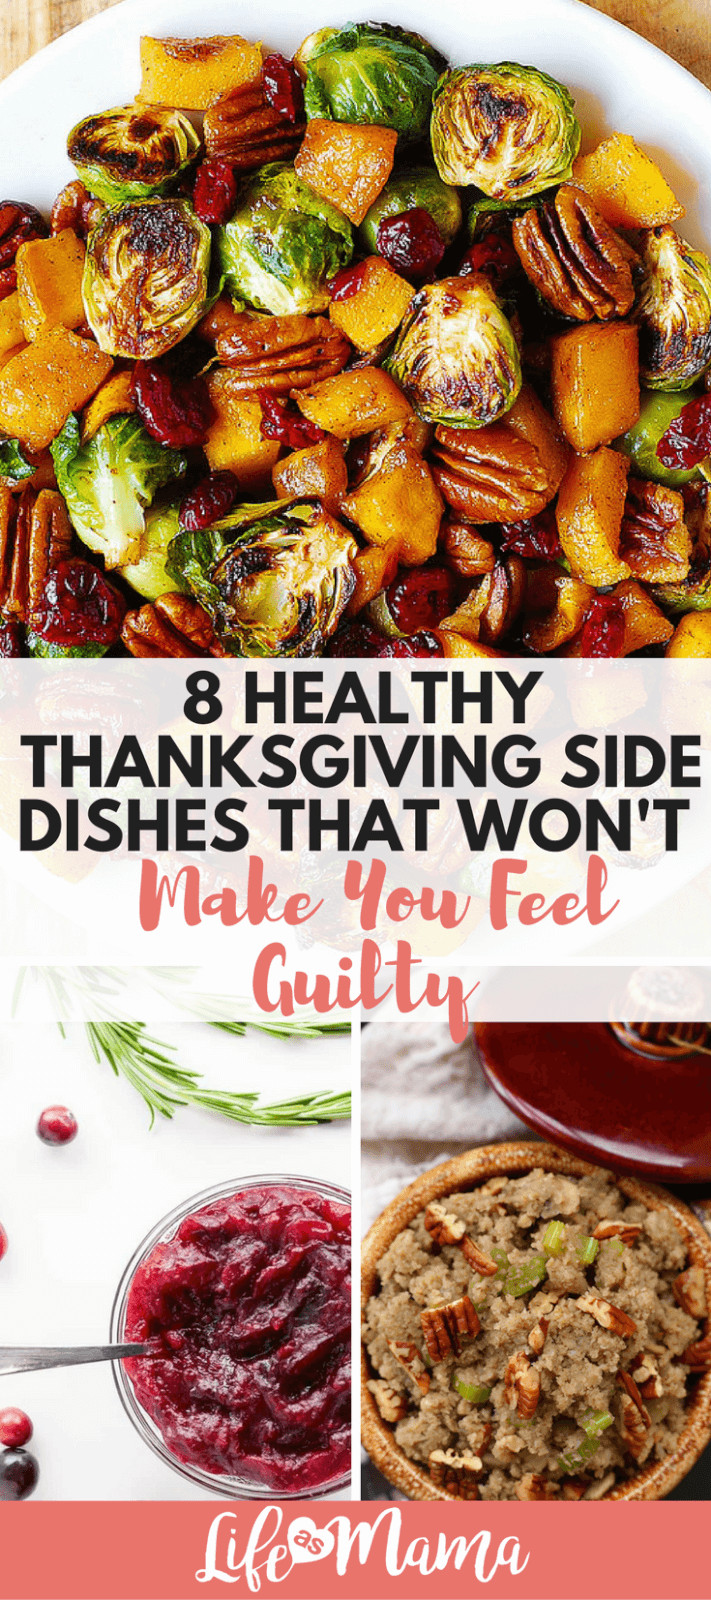 Healthy Thanksgiving Sides  8 Healthy Thanksgiving Side Dishes That Won t Make You